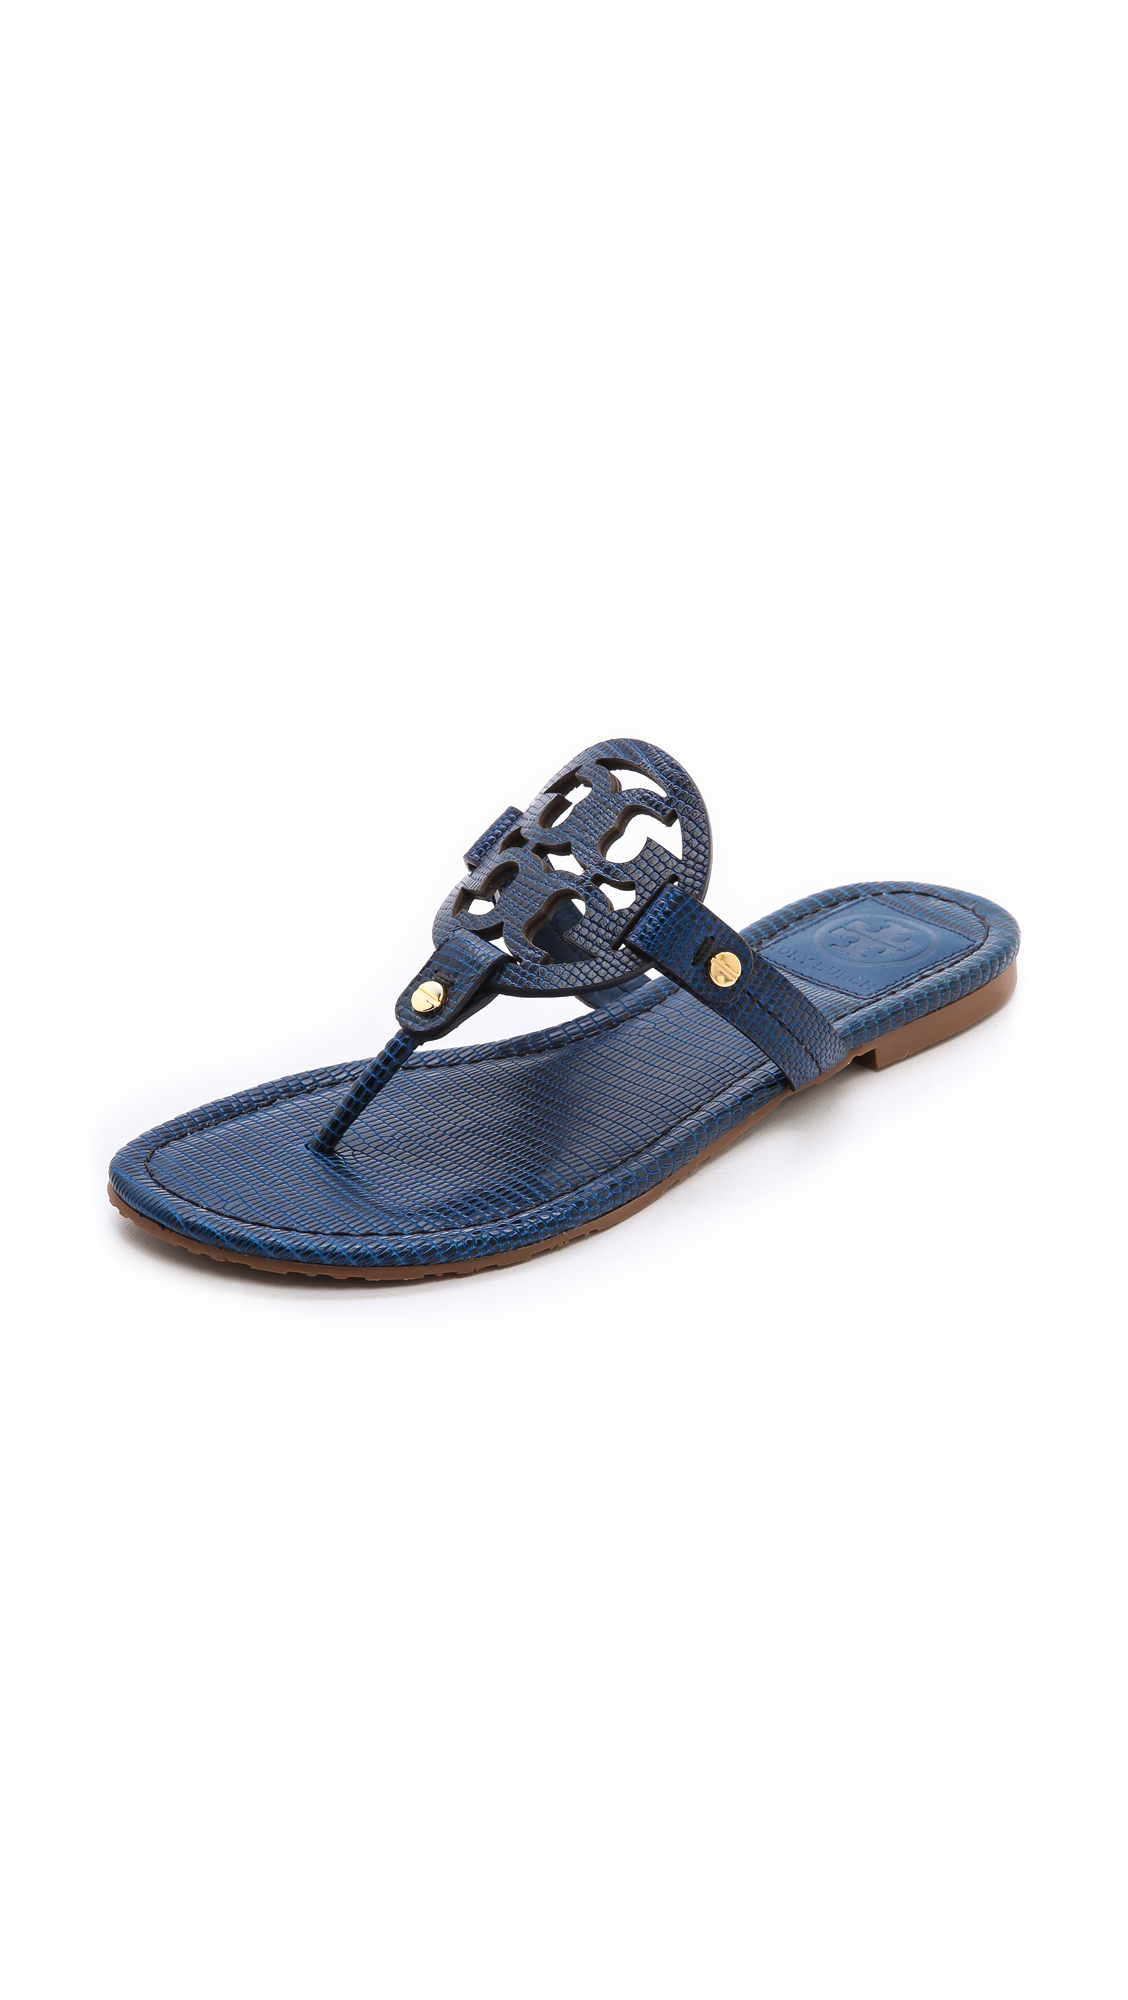 267e6920a77732 Lyst - Tory Burch Miller Tejus Print Sandals Newport Navy in Blue